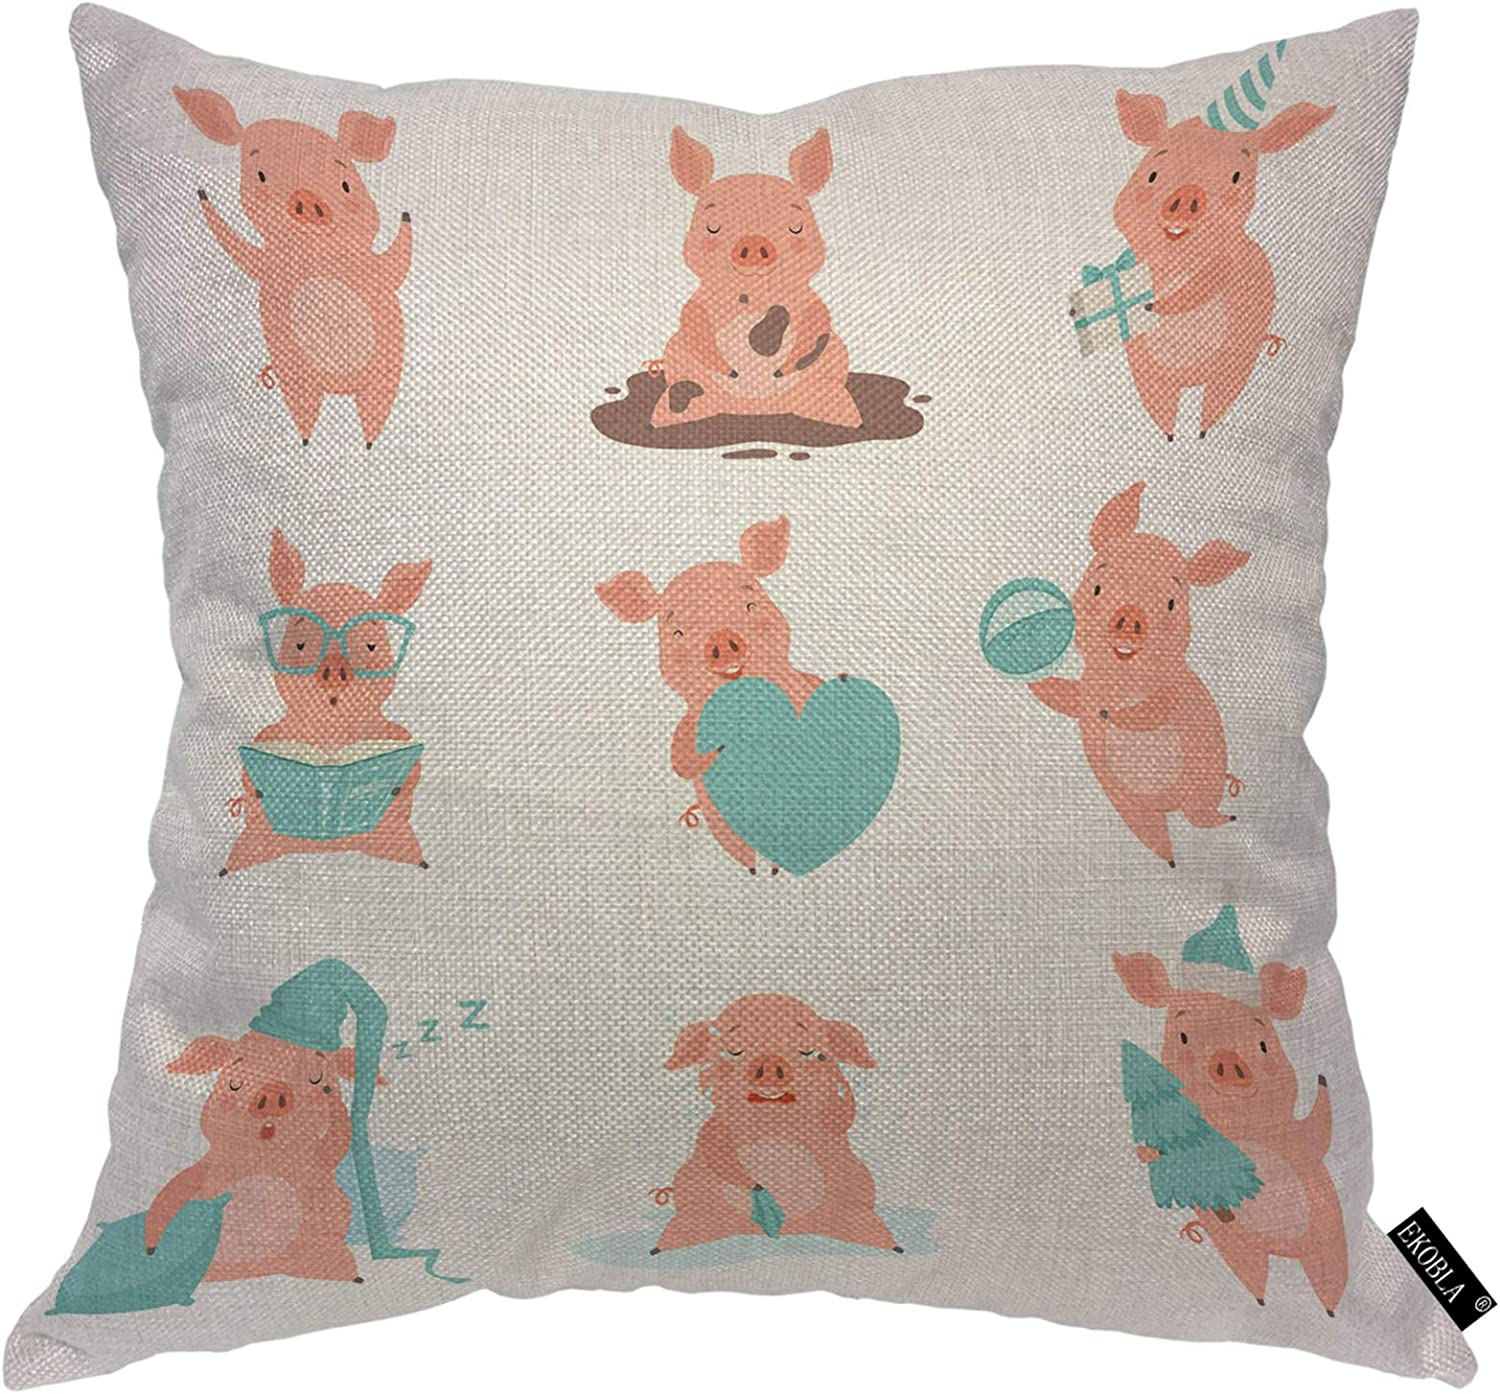 EKOBLA Pink Pigs Throw Pillow Cover Cute Cheerful Funny Piglets Cartoon Characters Adorable Animal Cozy Square Cushion Case for Men Women Boys Girls Room Home Decor Cotton Linen 18x18 Inch